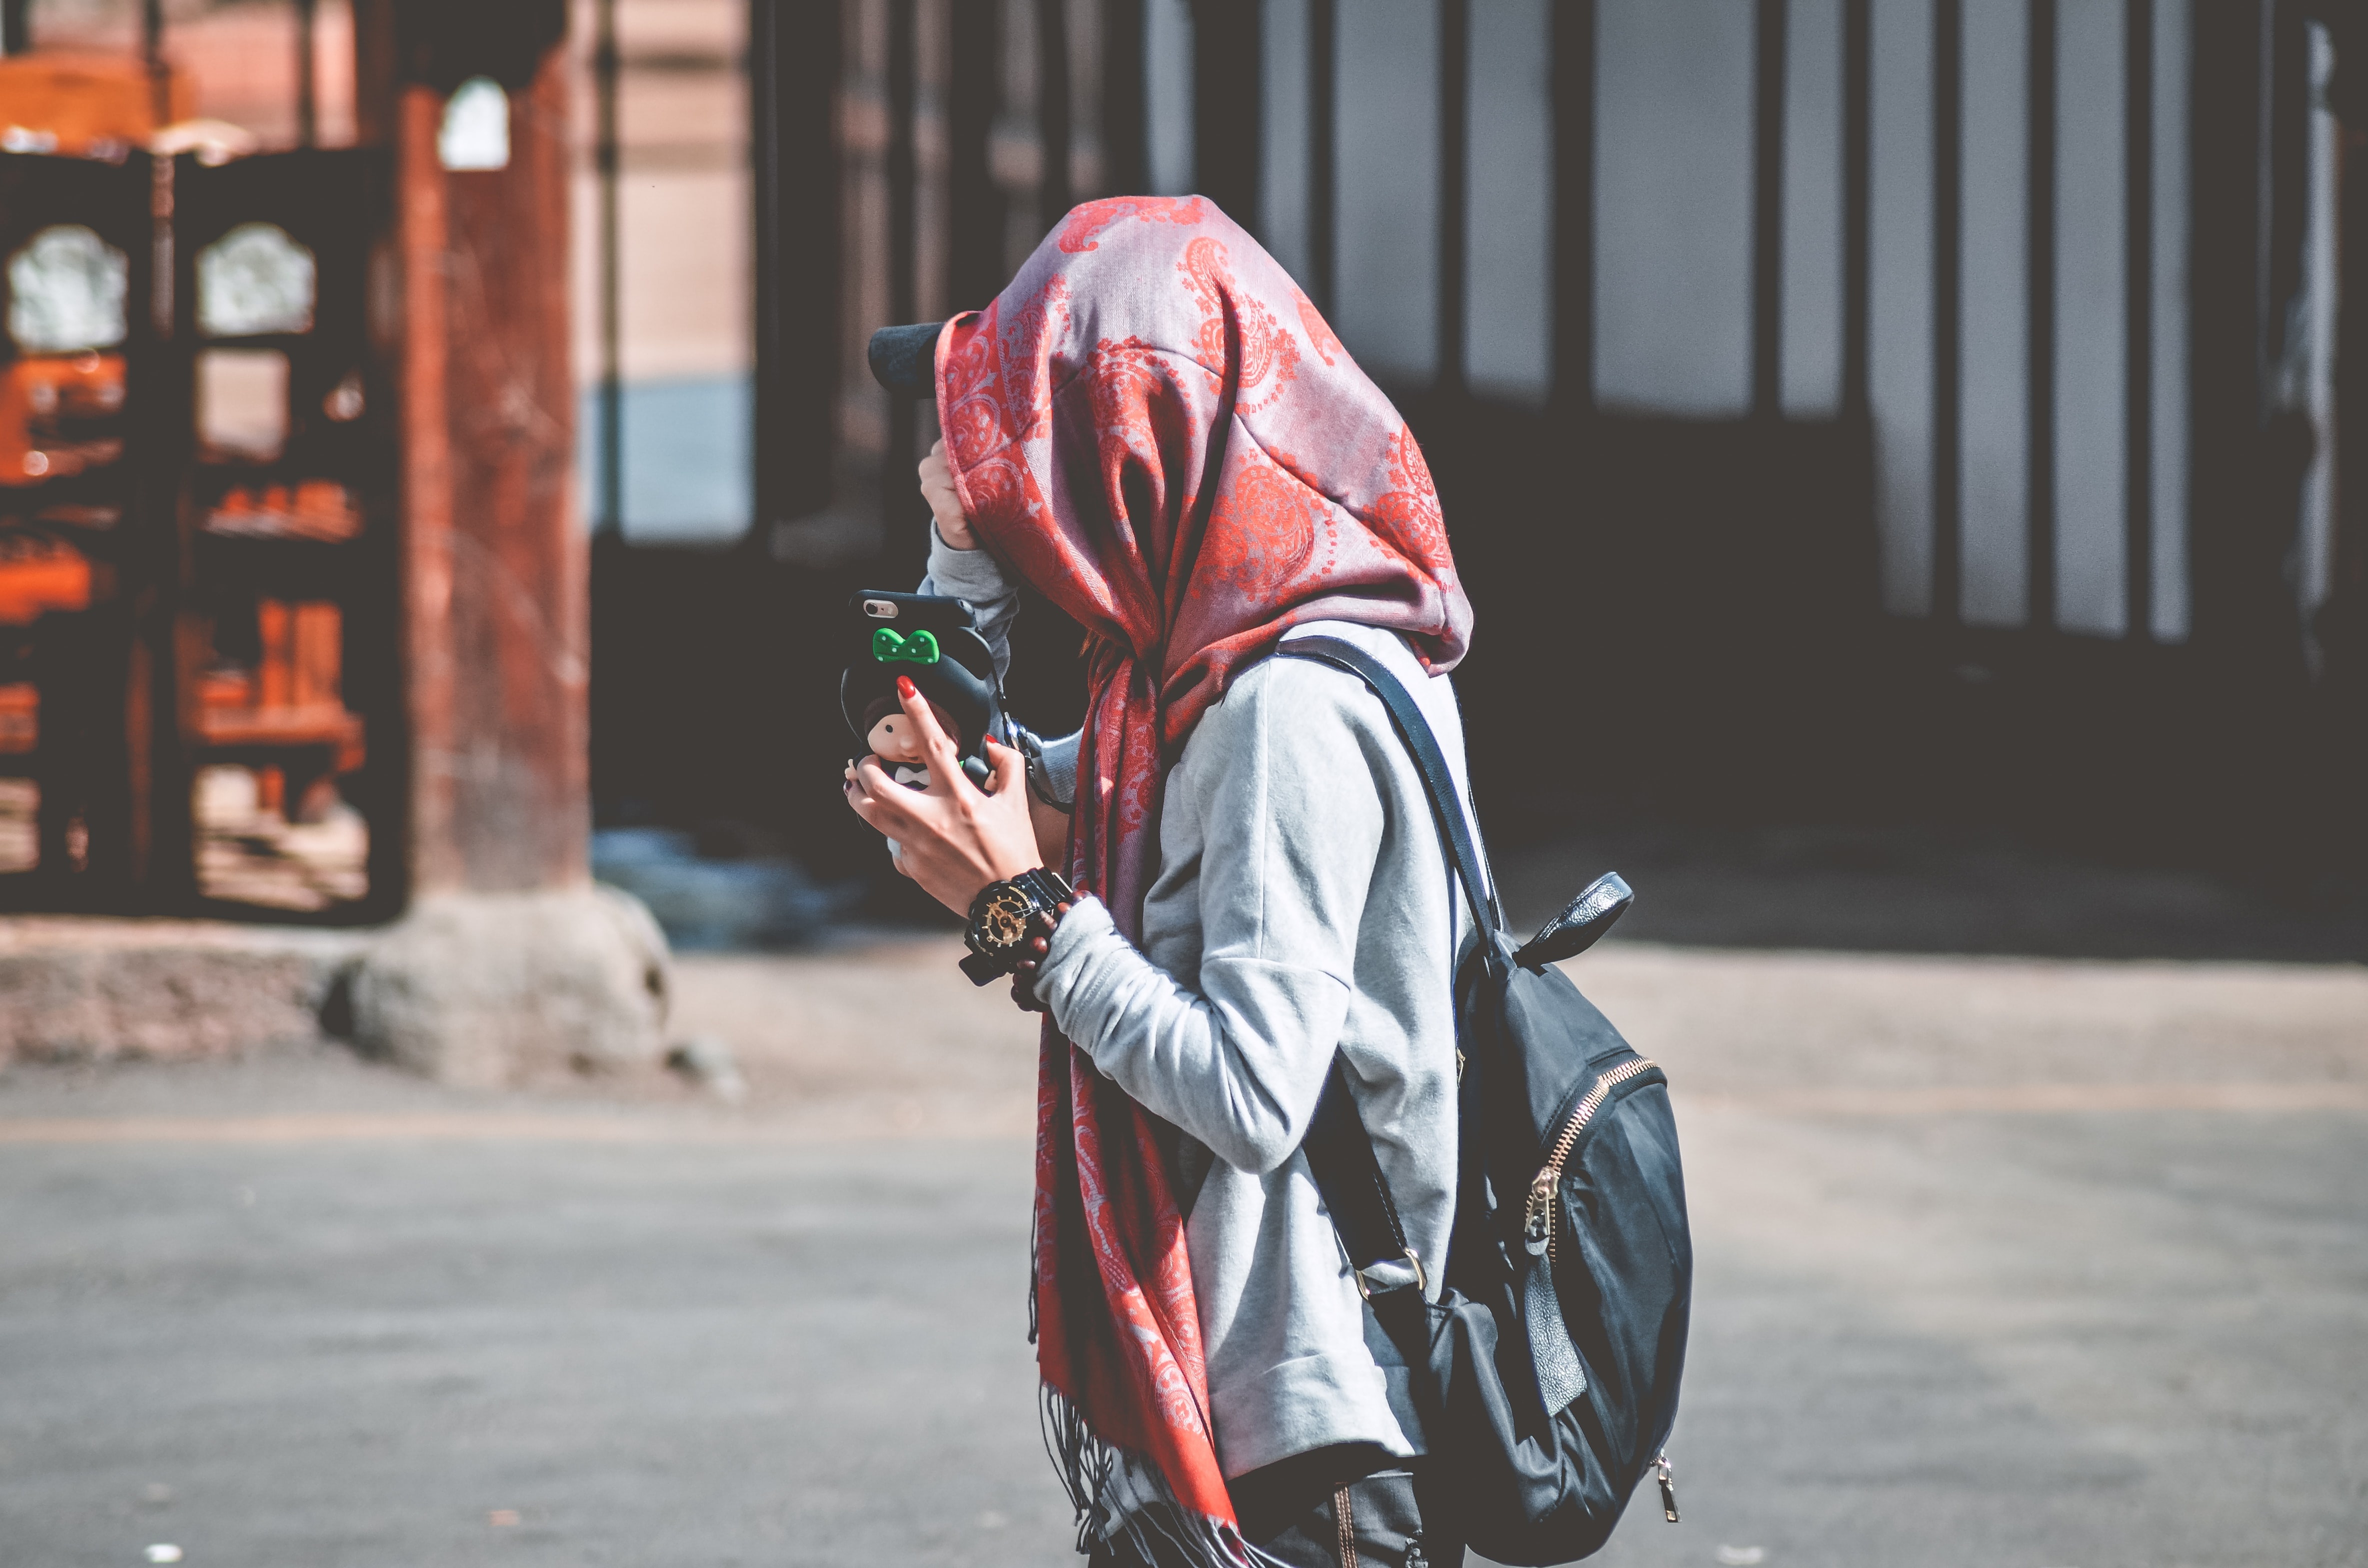 photo of woman wearing red and grey floral hijab scarf and carrying black leather backpack walking on street